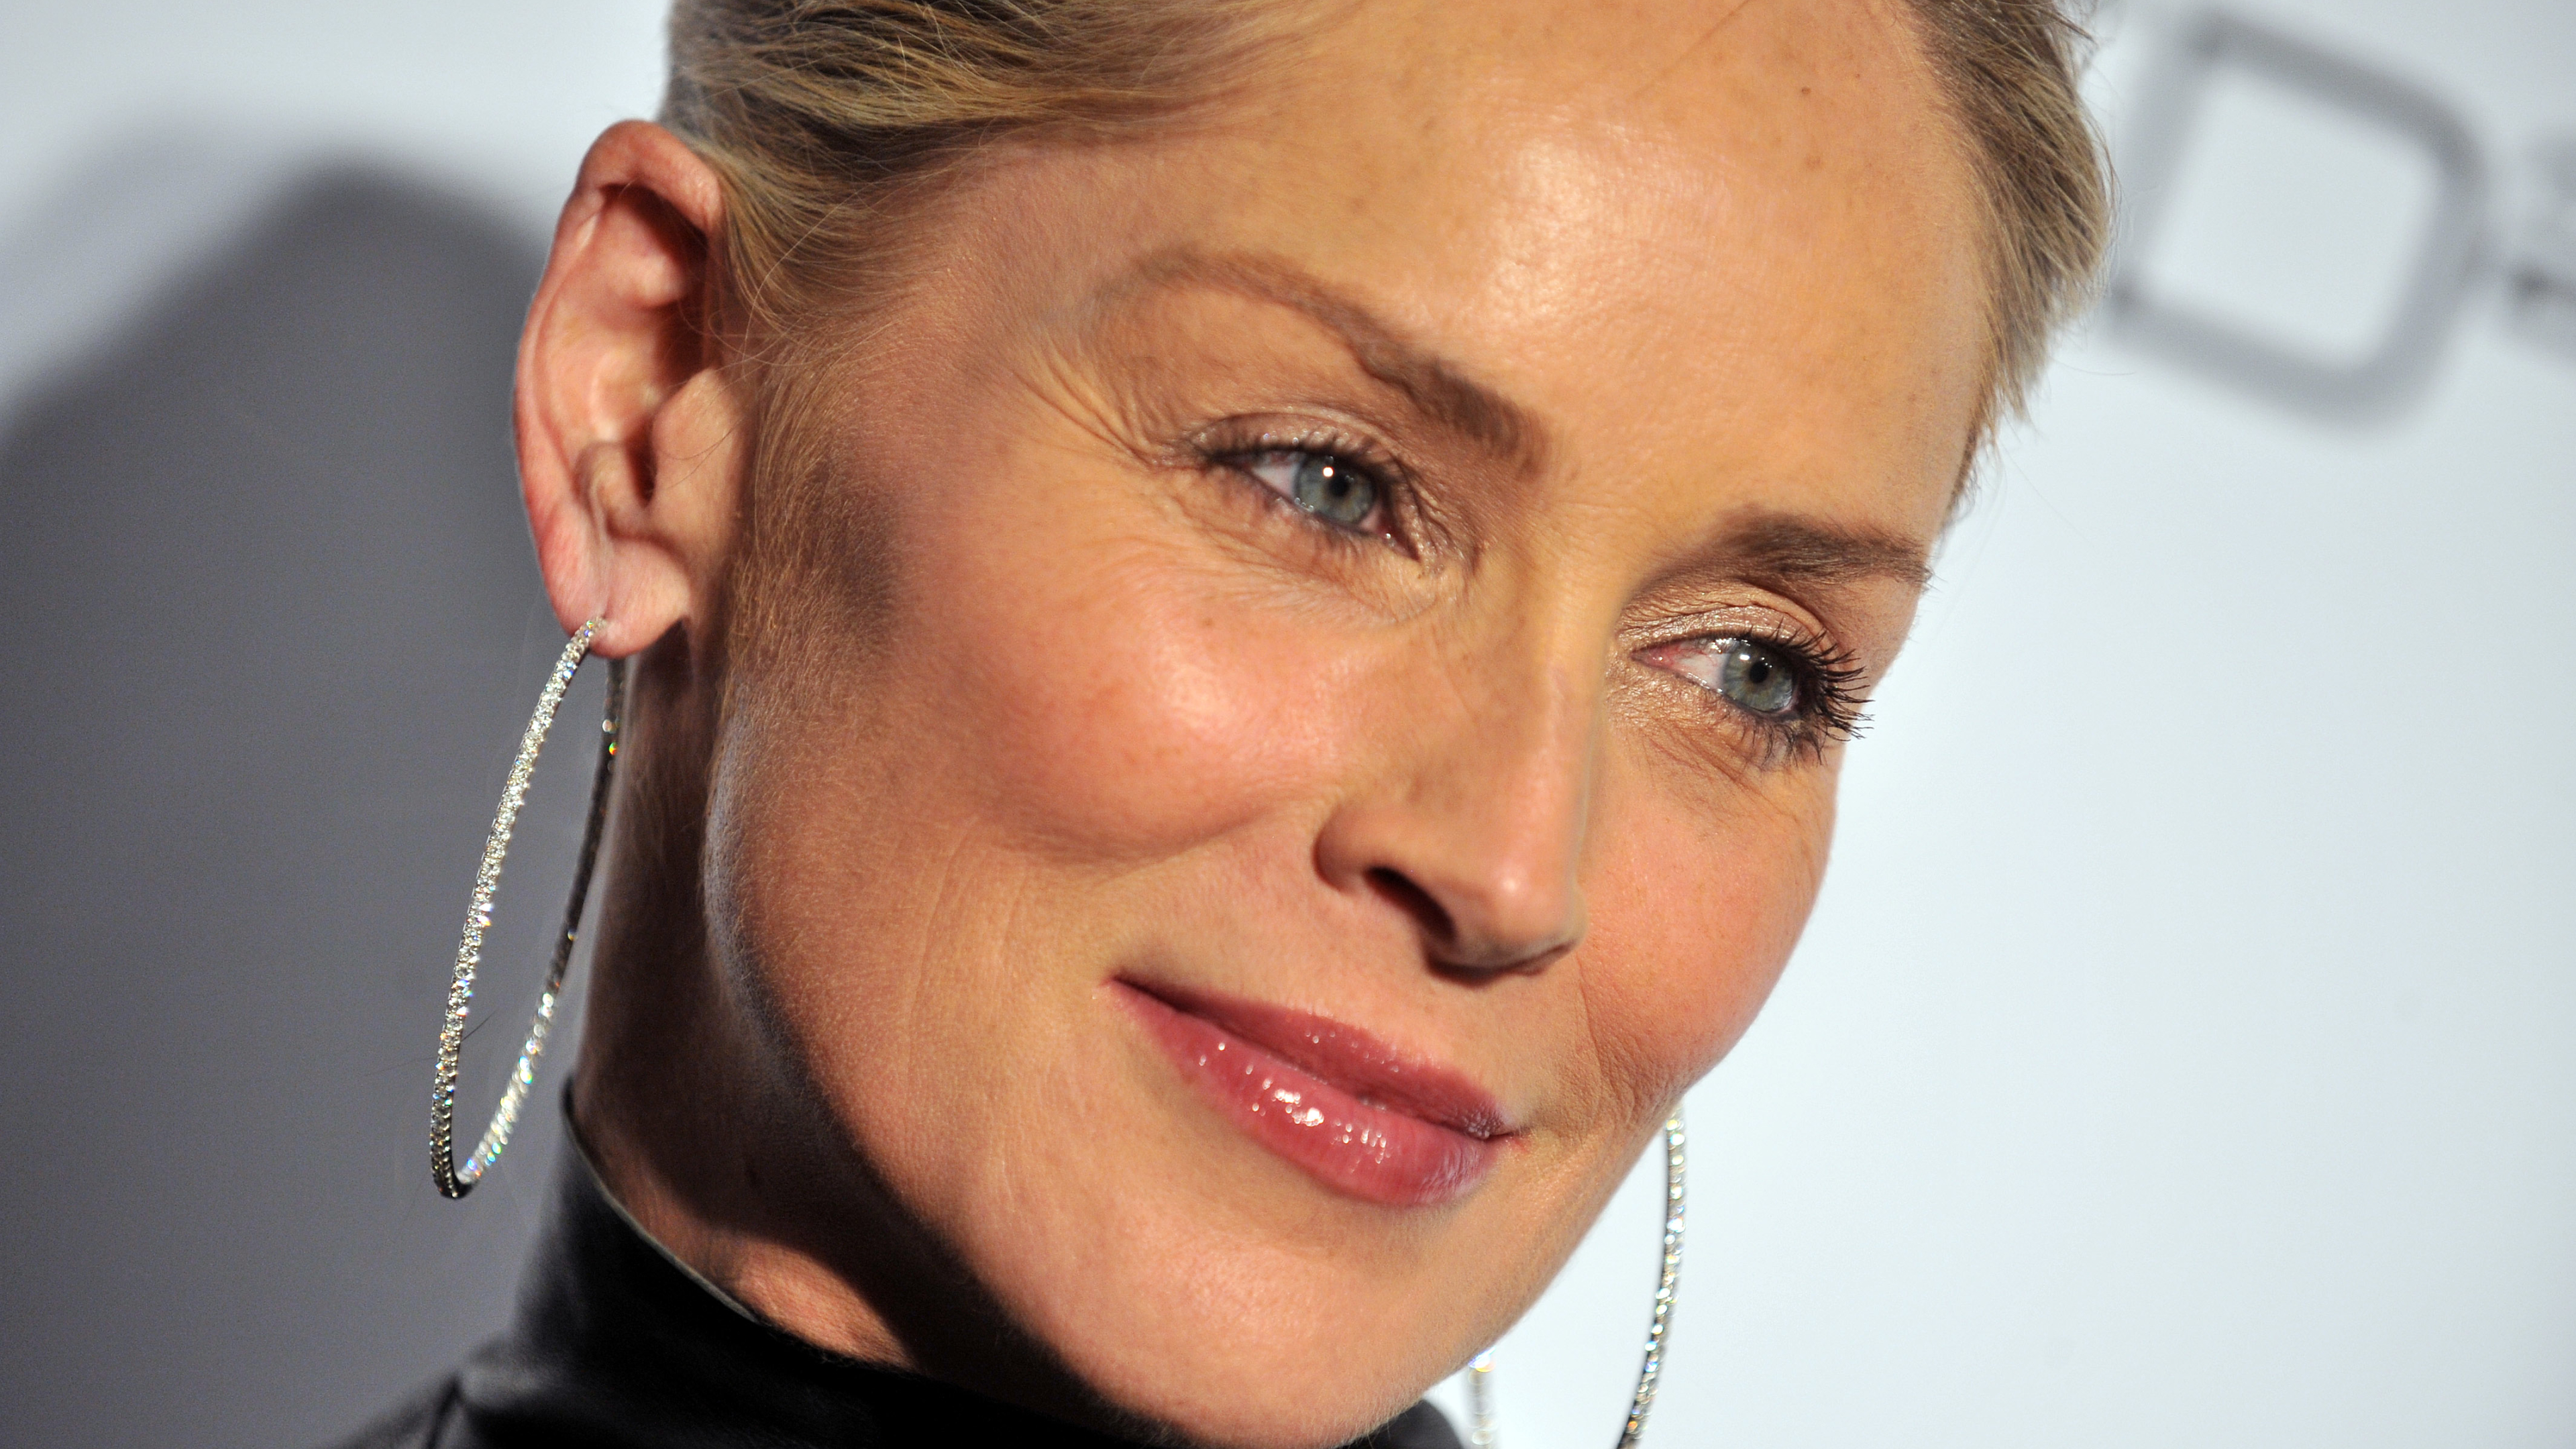 Sharon Stone Wallpaper posted by Ethan Anderson